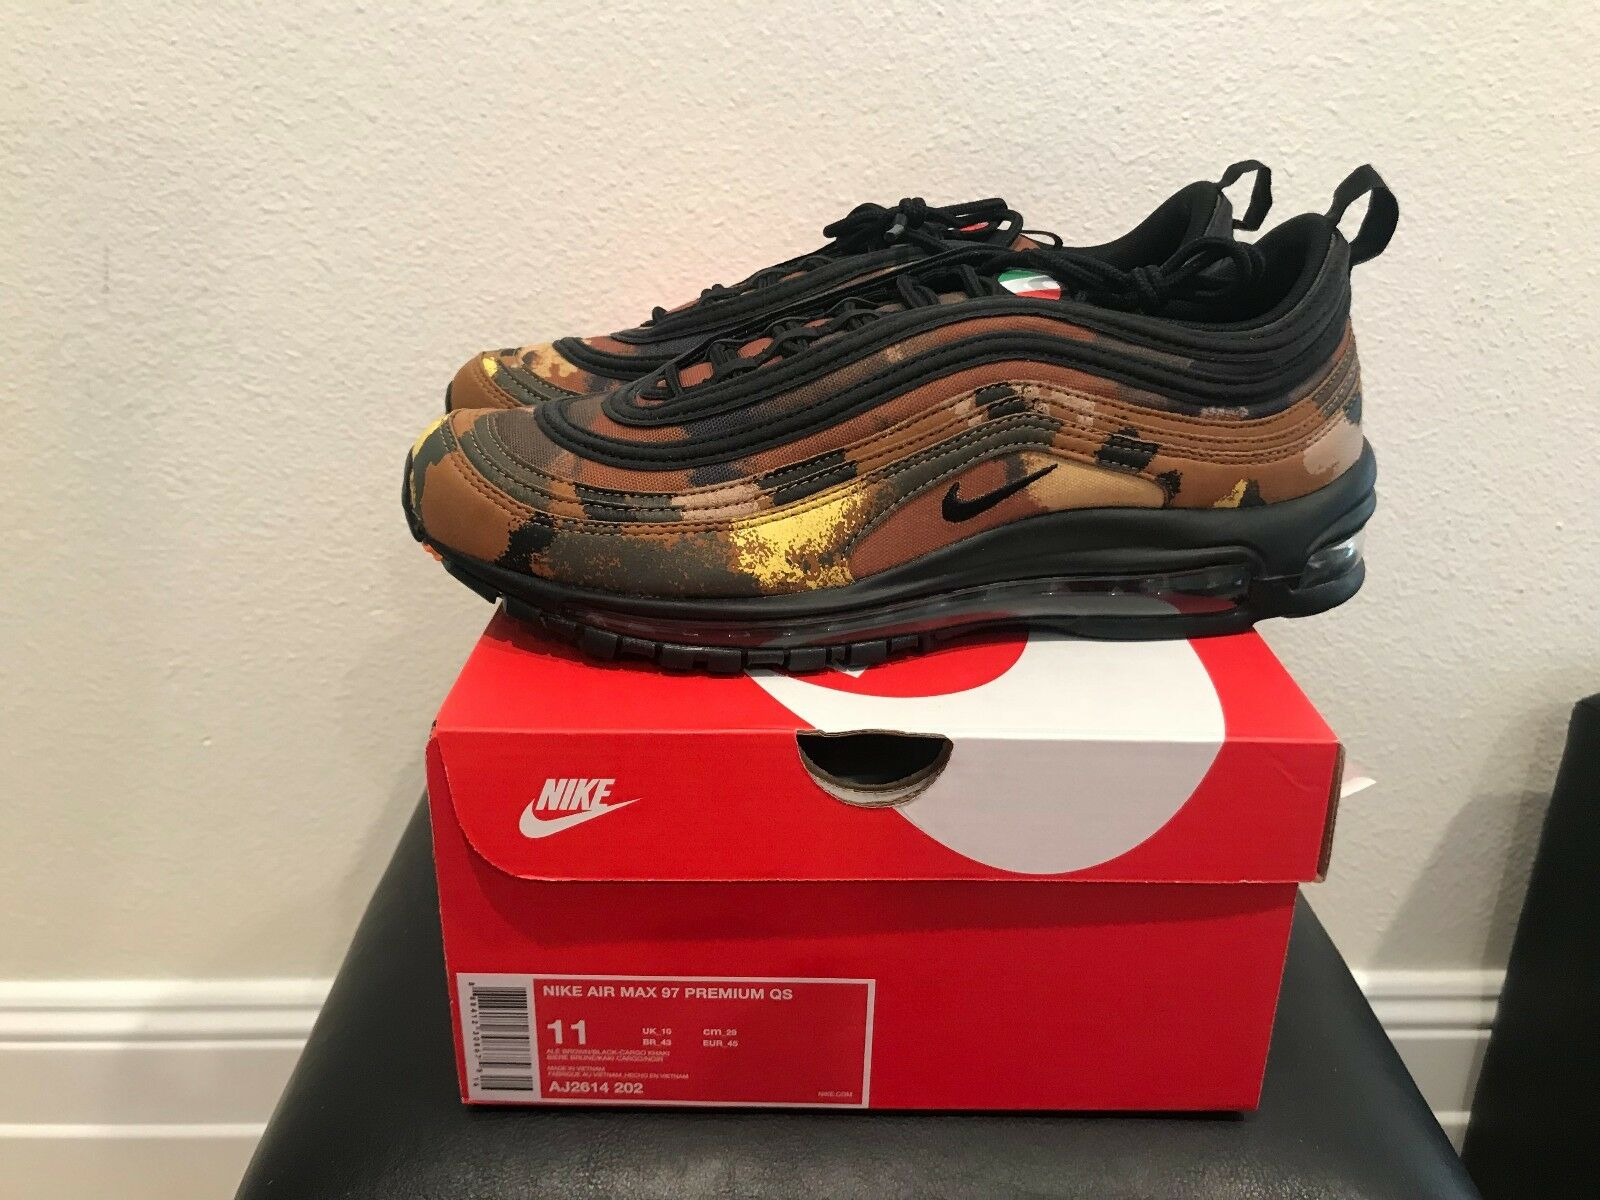 Brand New DS Nike Air Max 97  Camo Pack QS AJ2614 202 SZ 11